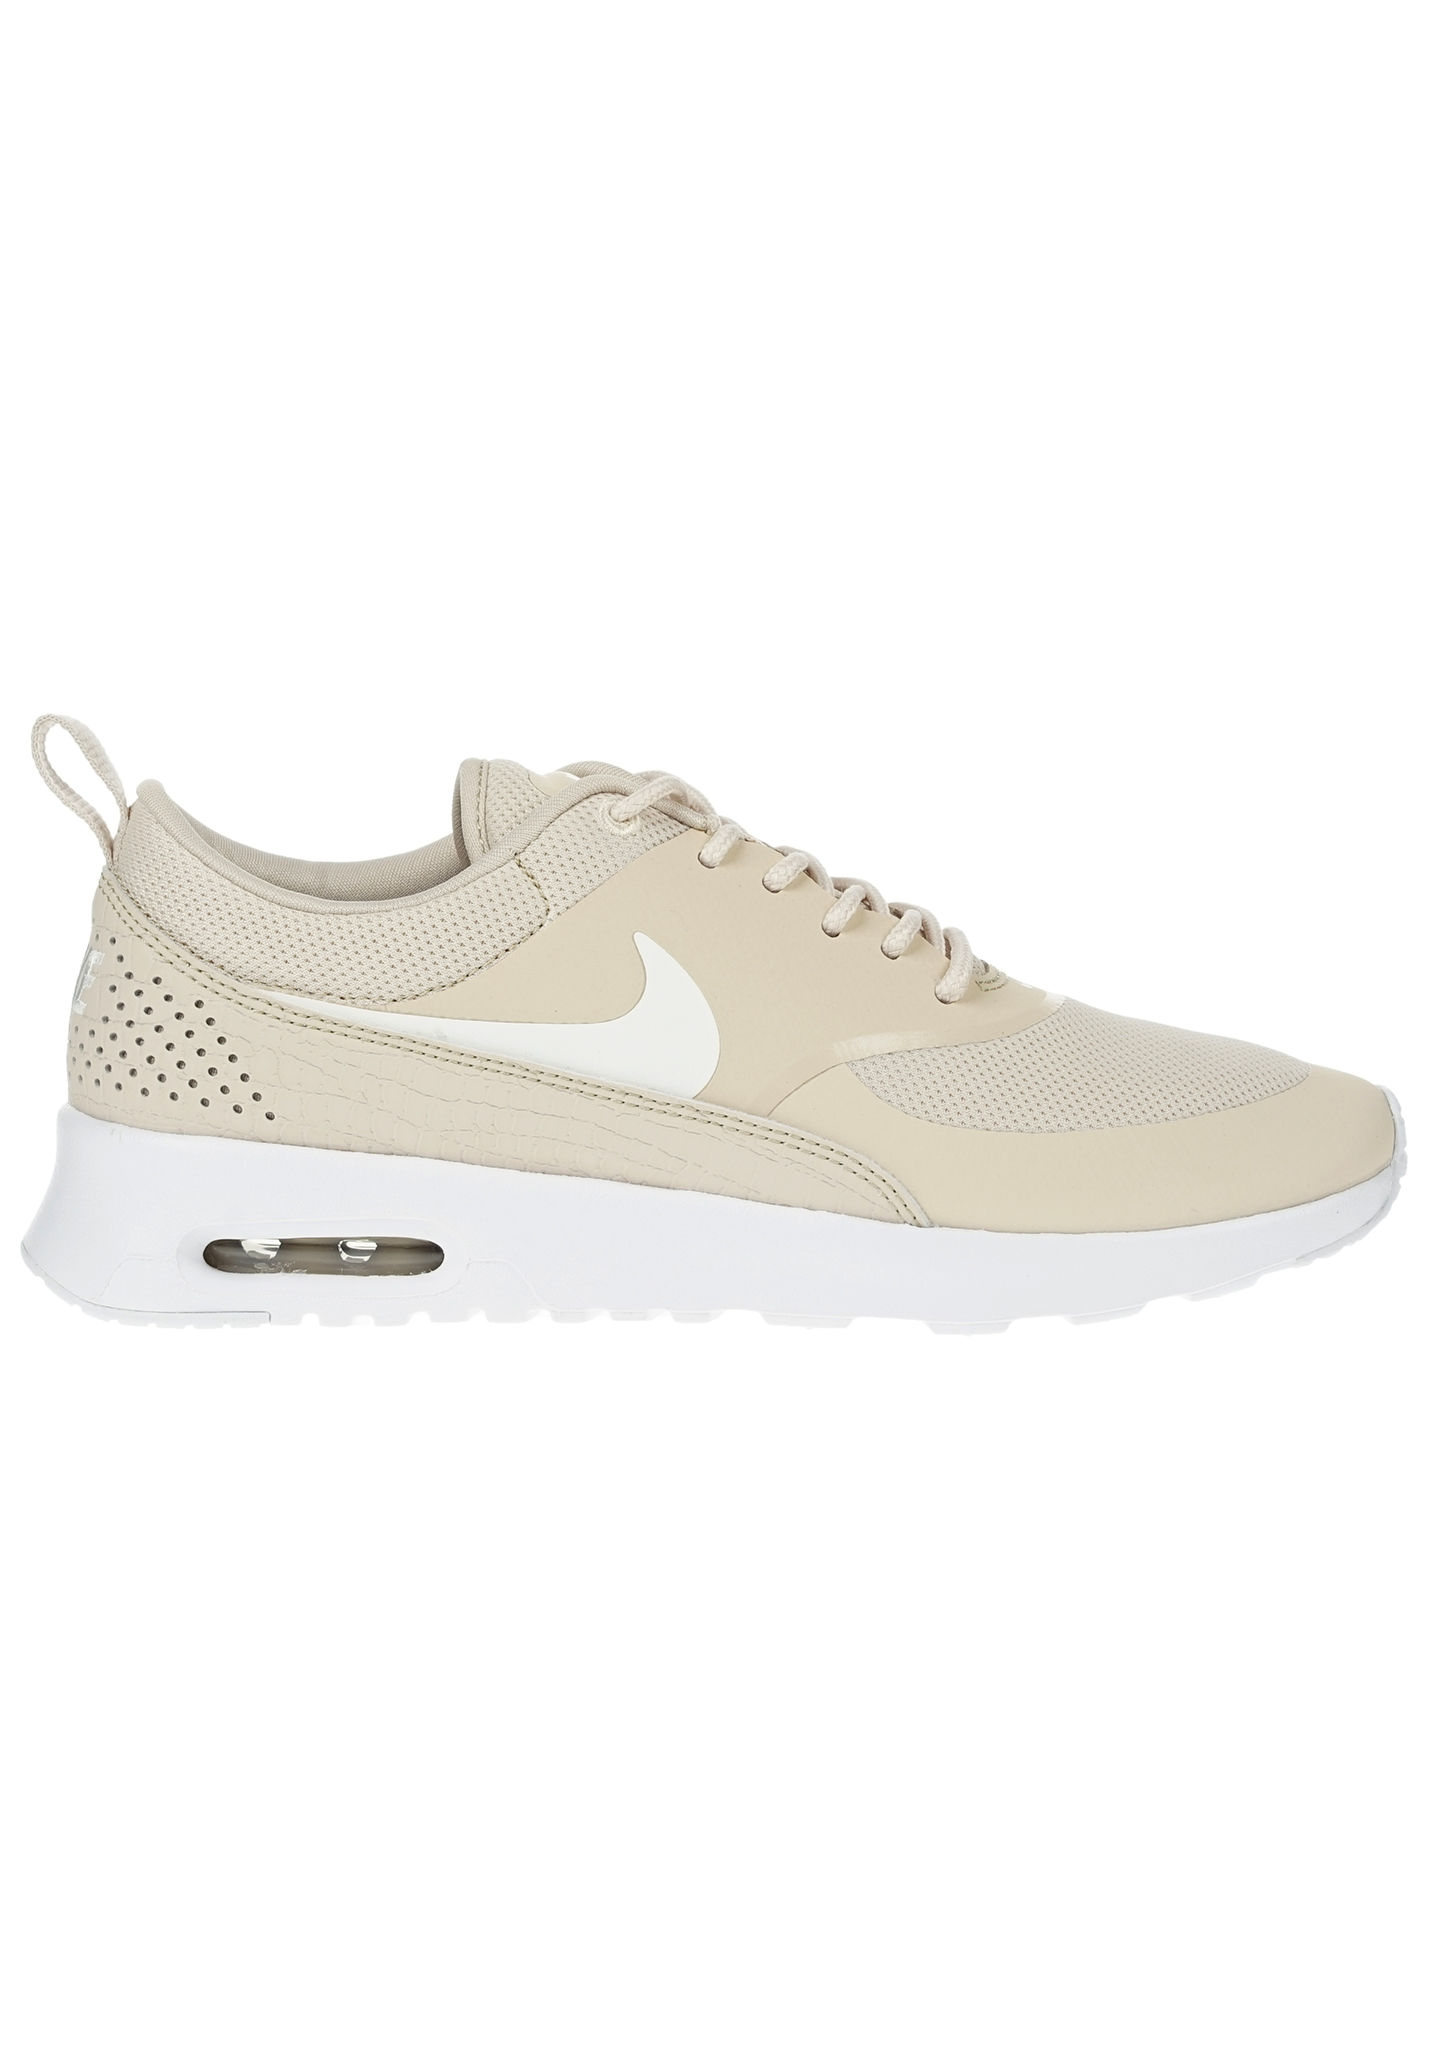 71c654f1d10d1 NIKE SPORTSWEAR Air Max Thea - Baskets pour Femme - Beige - Planet Sports